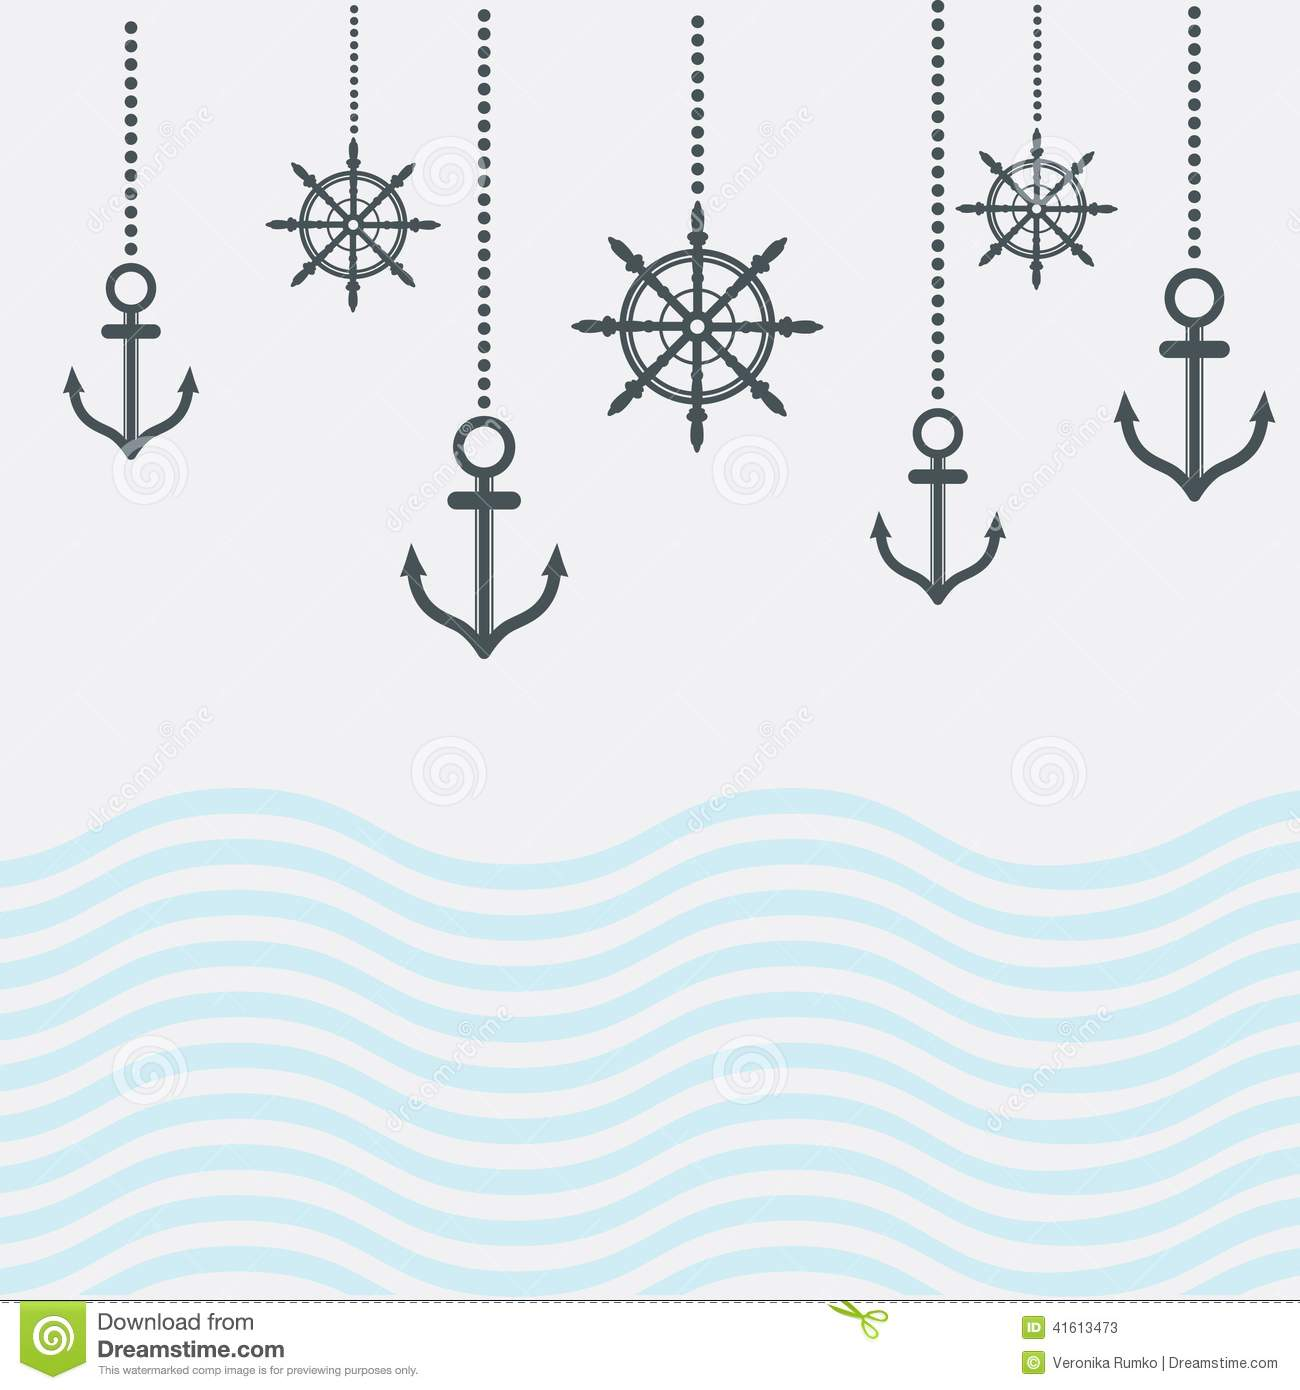 Design nautical template stock illustration illustration of blank design nautical template royalty free illustration toneelgroepblik Choice Image